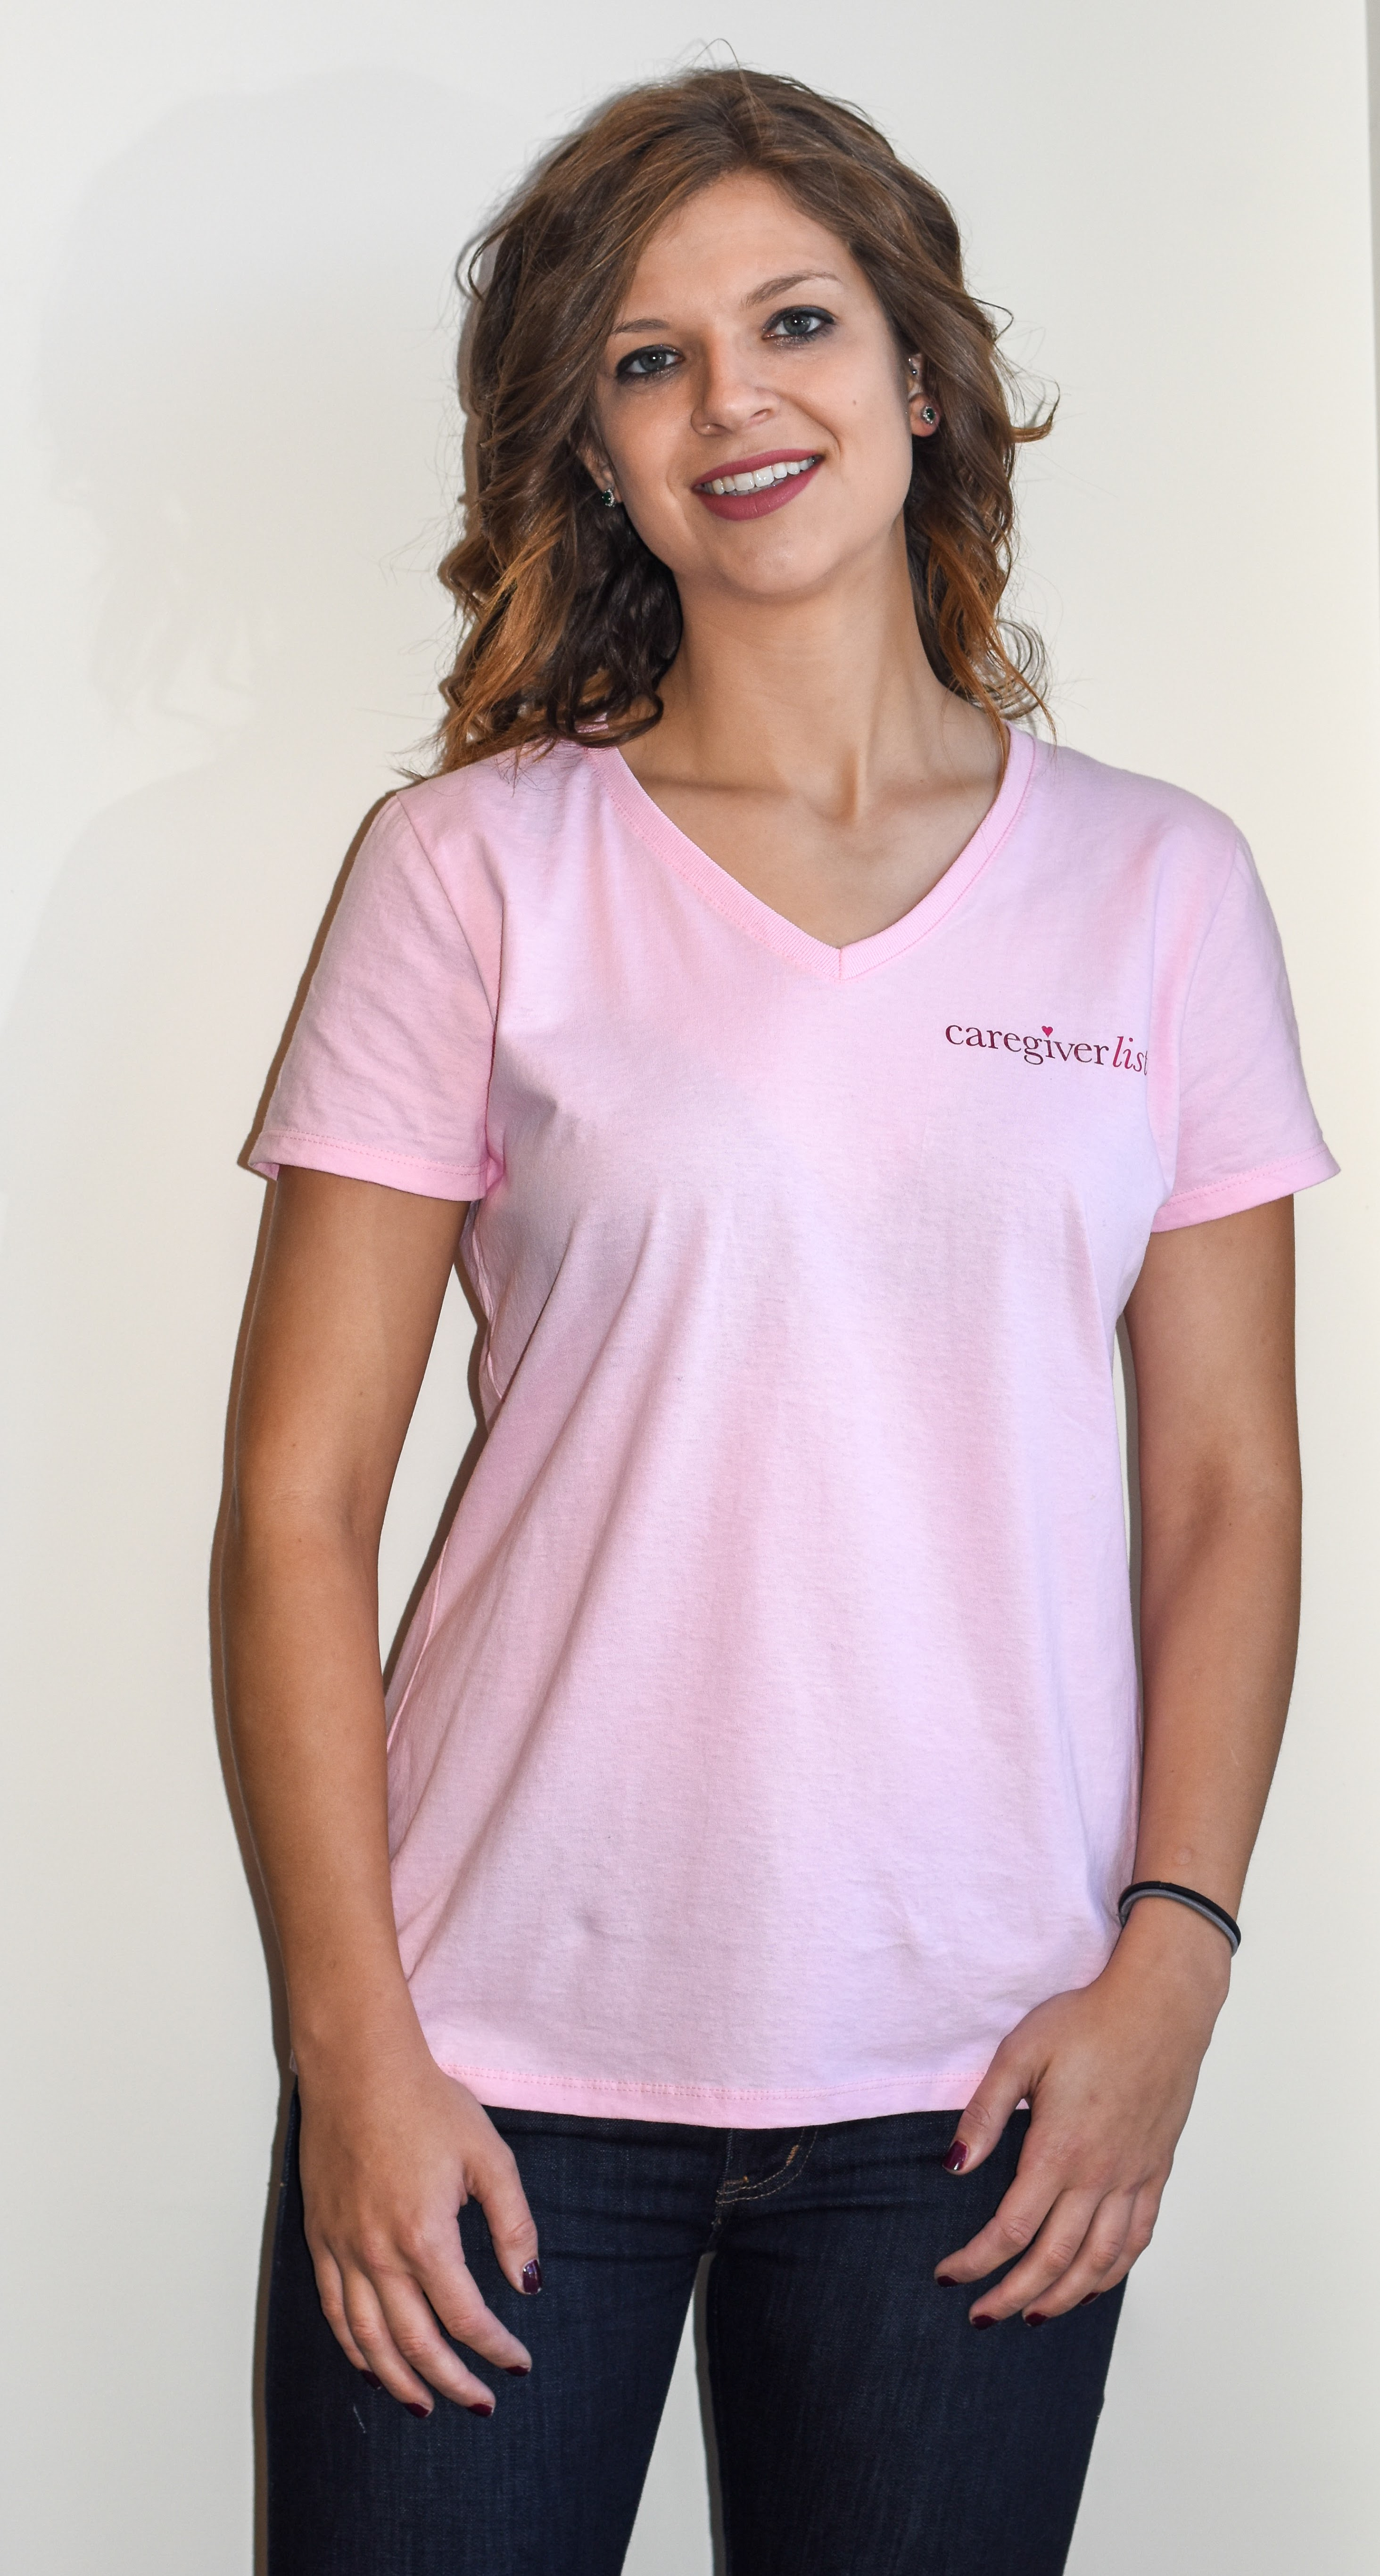 Pink Vneck Tshirt for professional association of caregivers